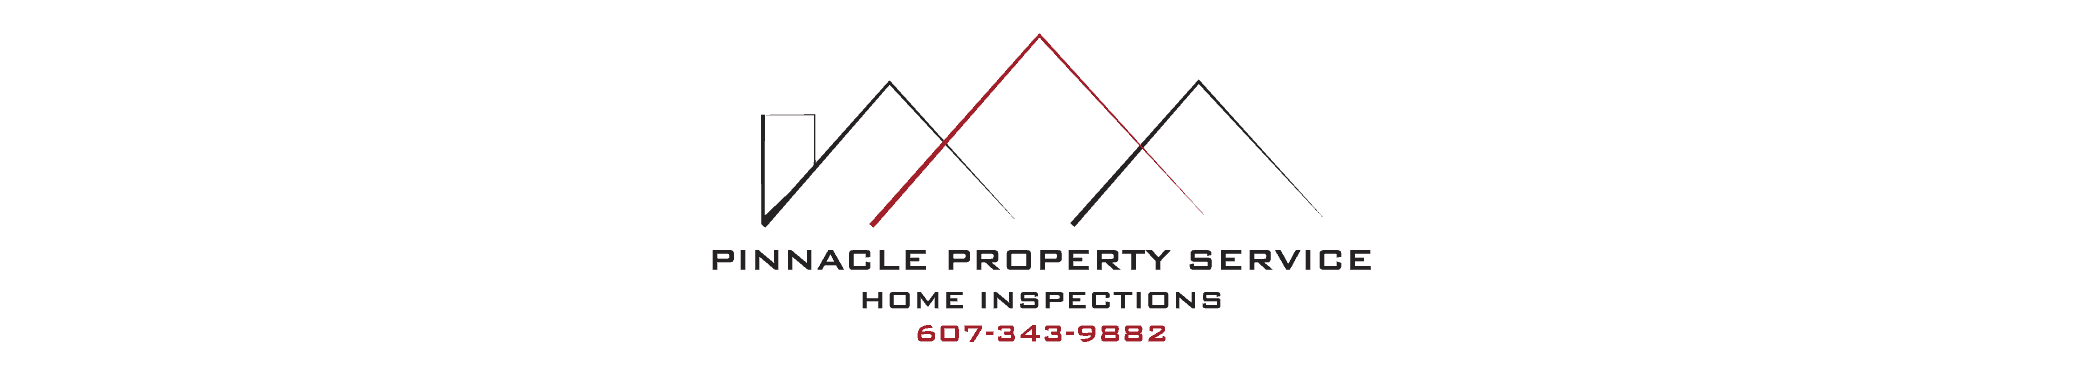 Pinnacle Property Service